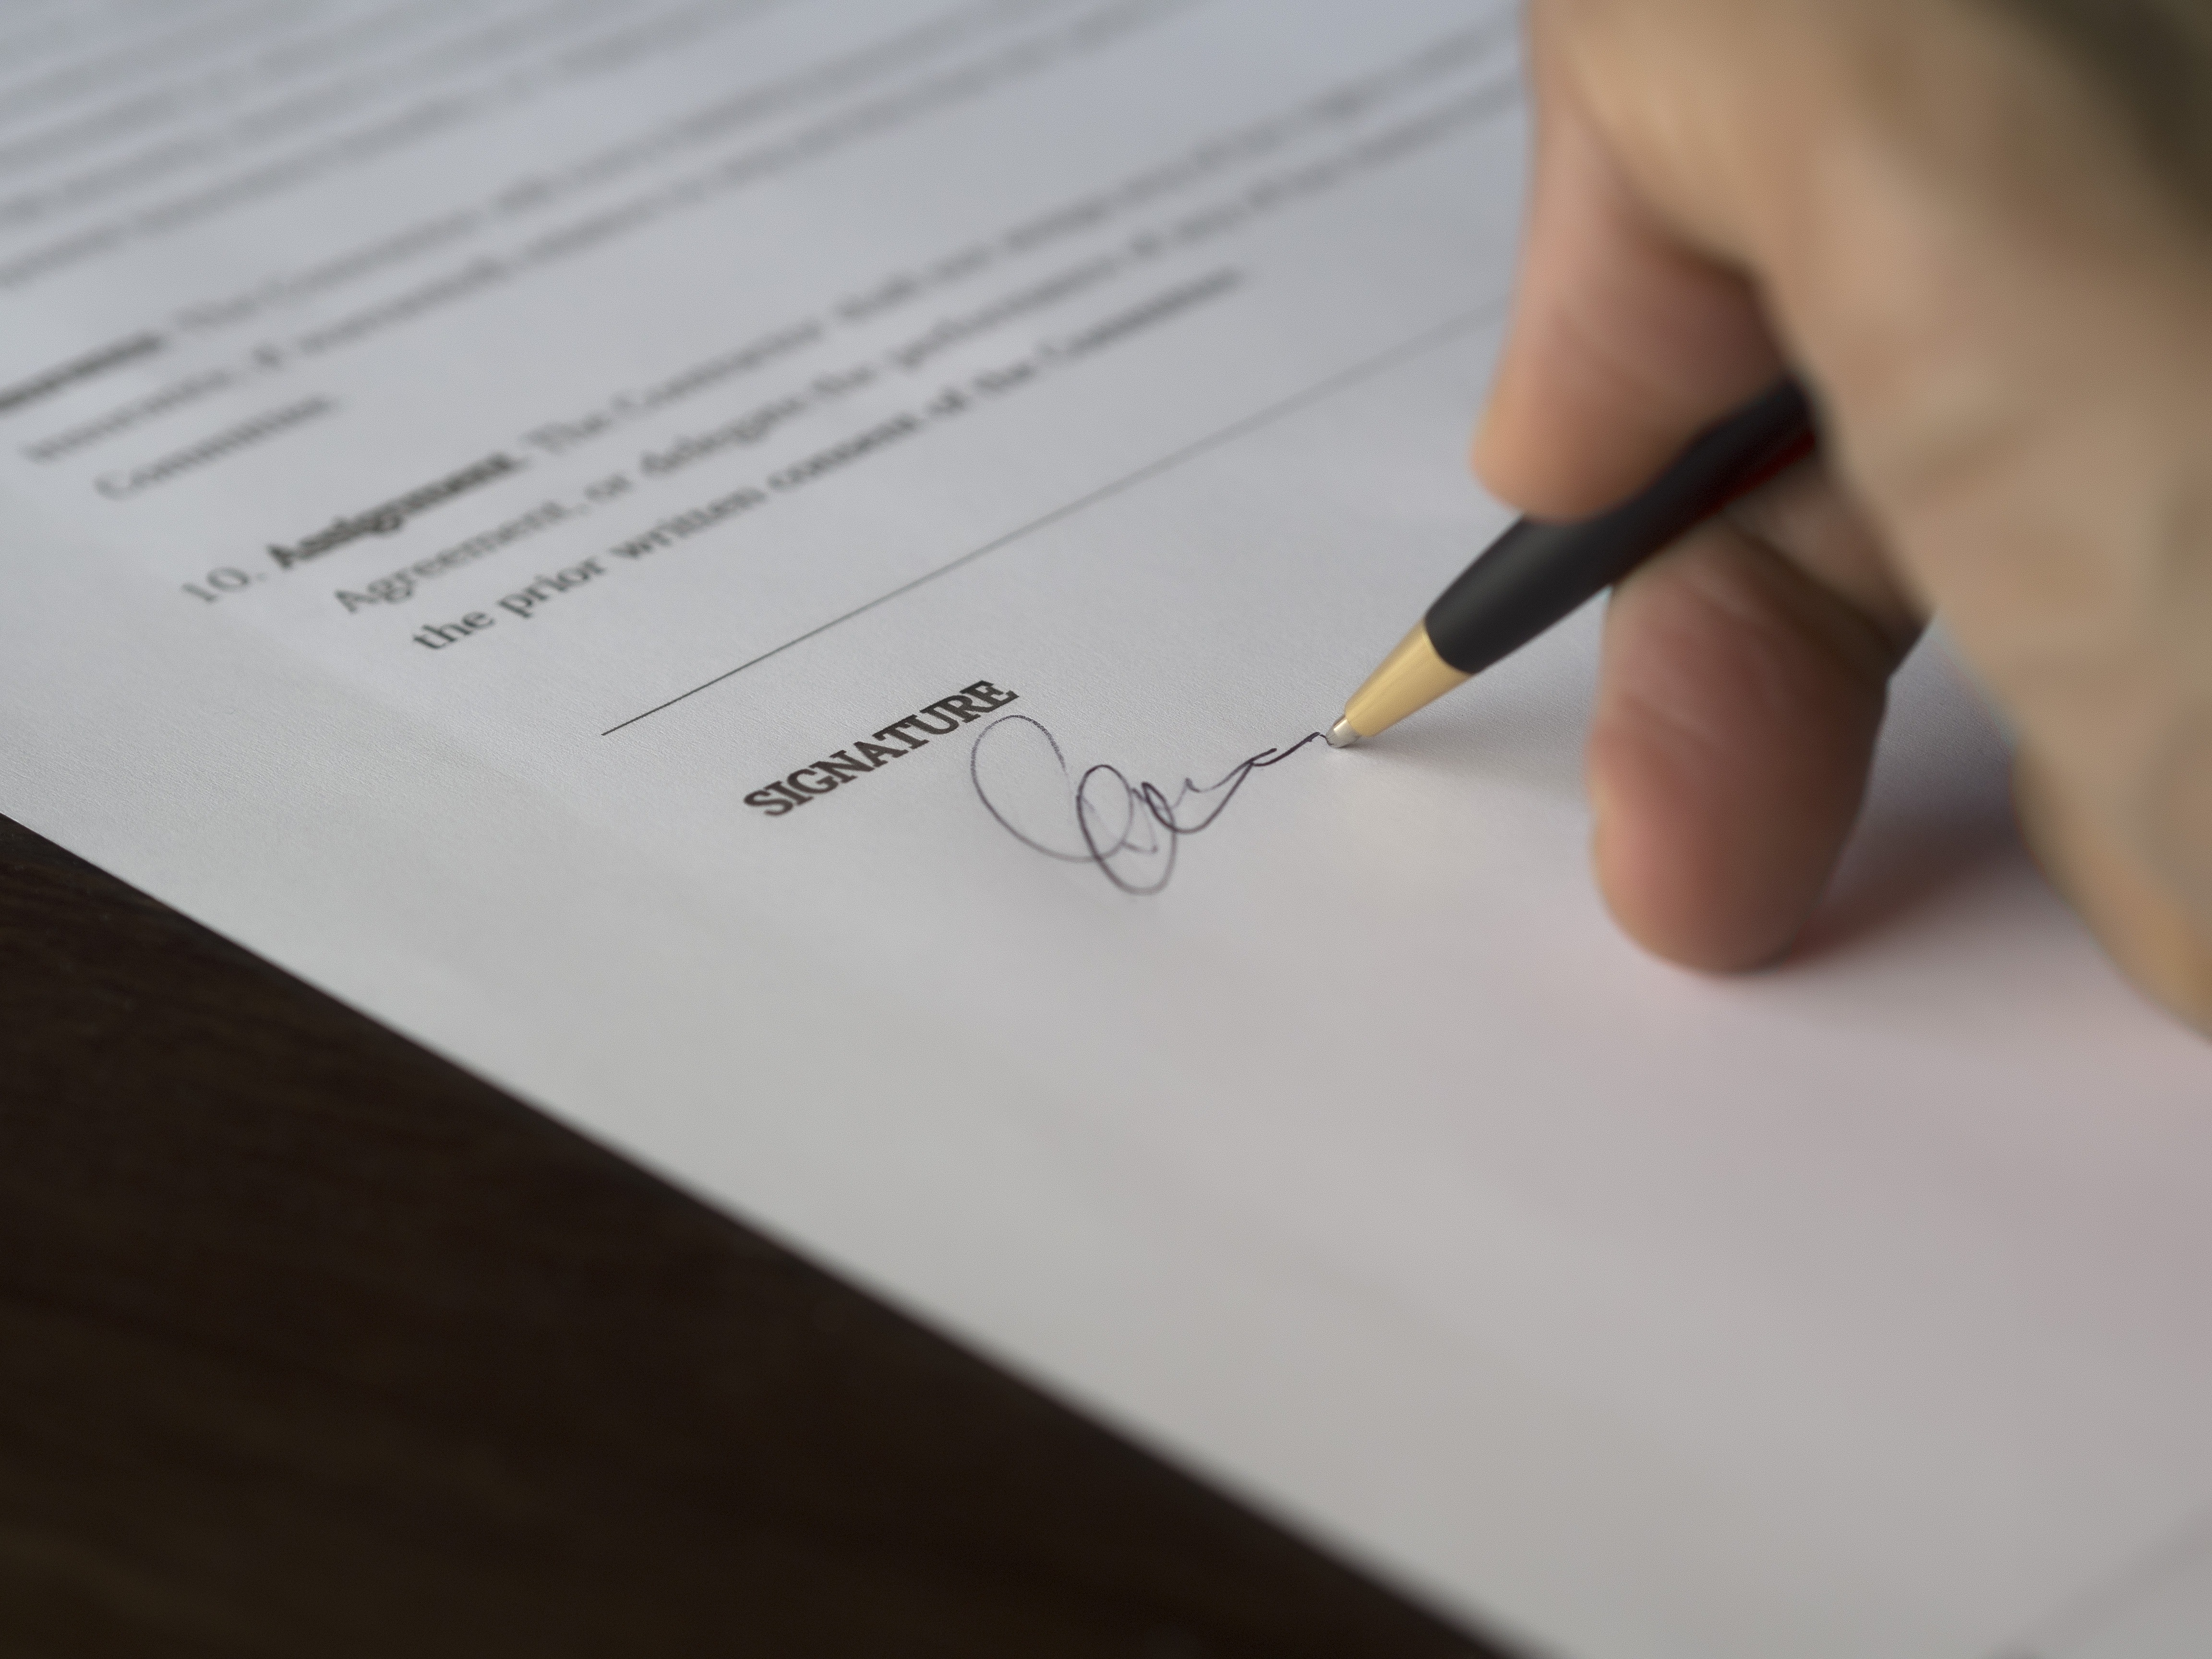 The Top Five Mistakes People Make When Creating A Will